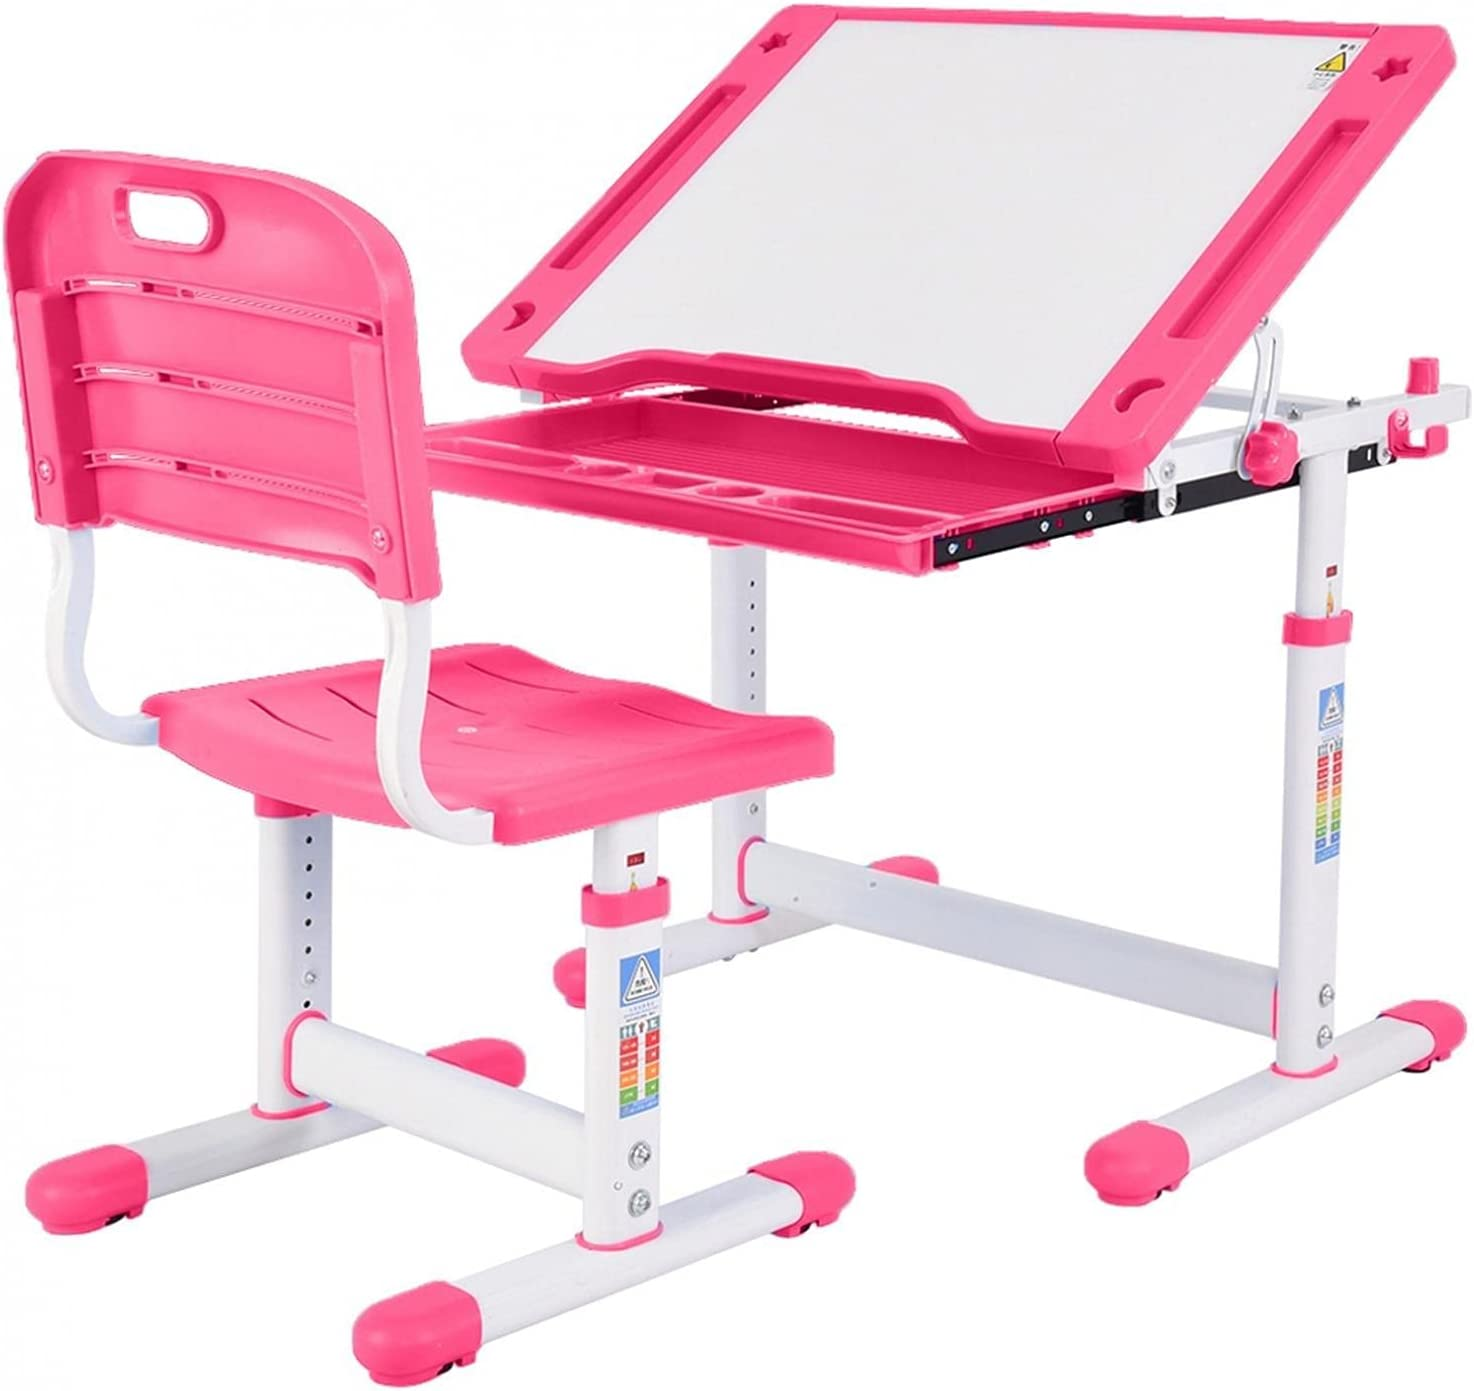 FartPeach School Desk for Kids - Memphis Mall Height Years 6-12 Adjustable St Recommended